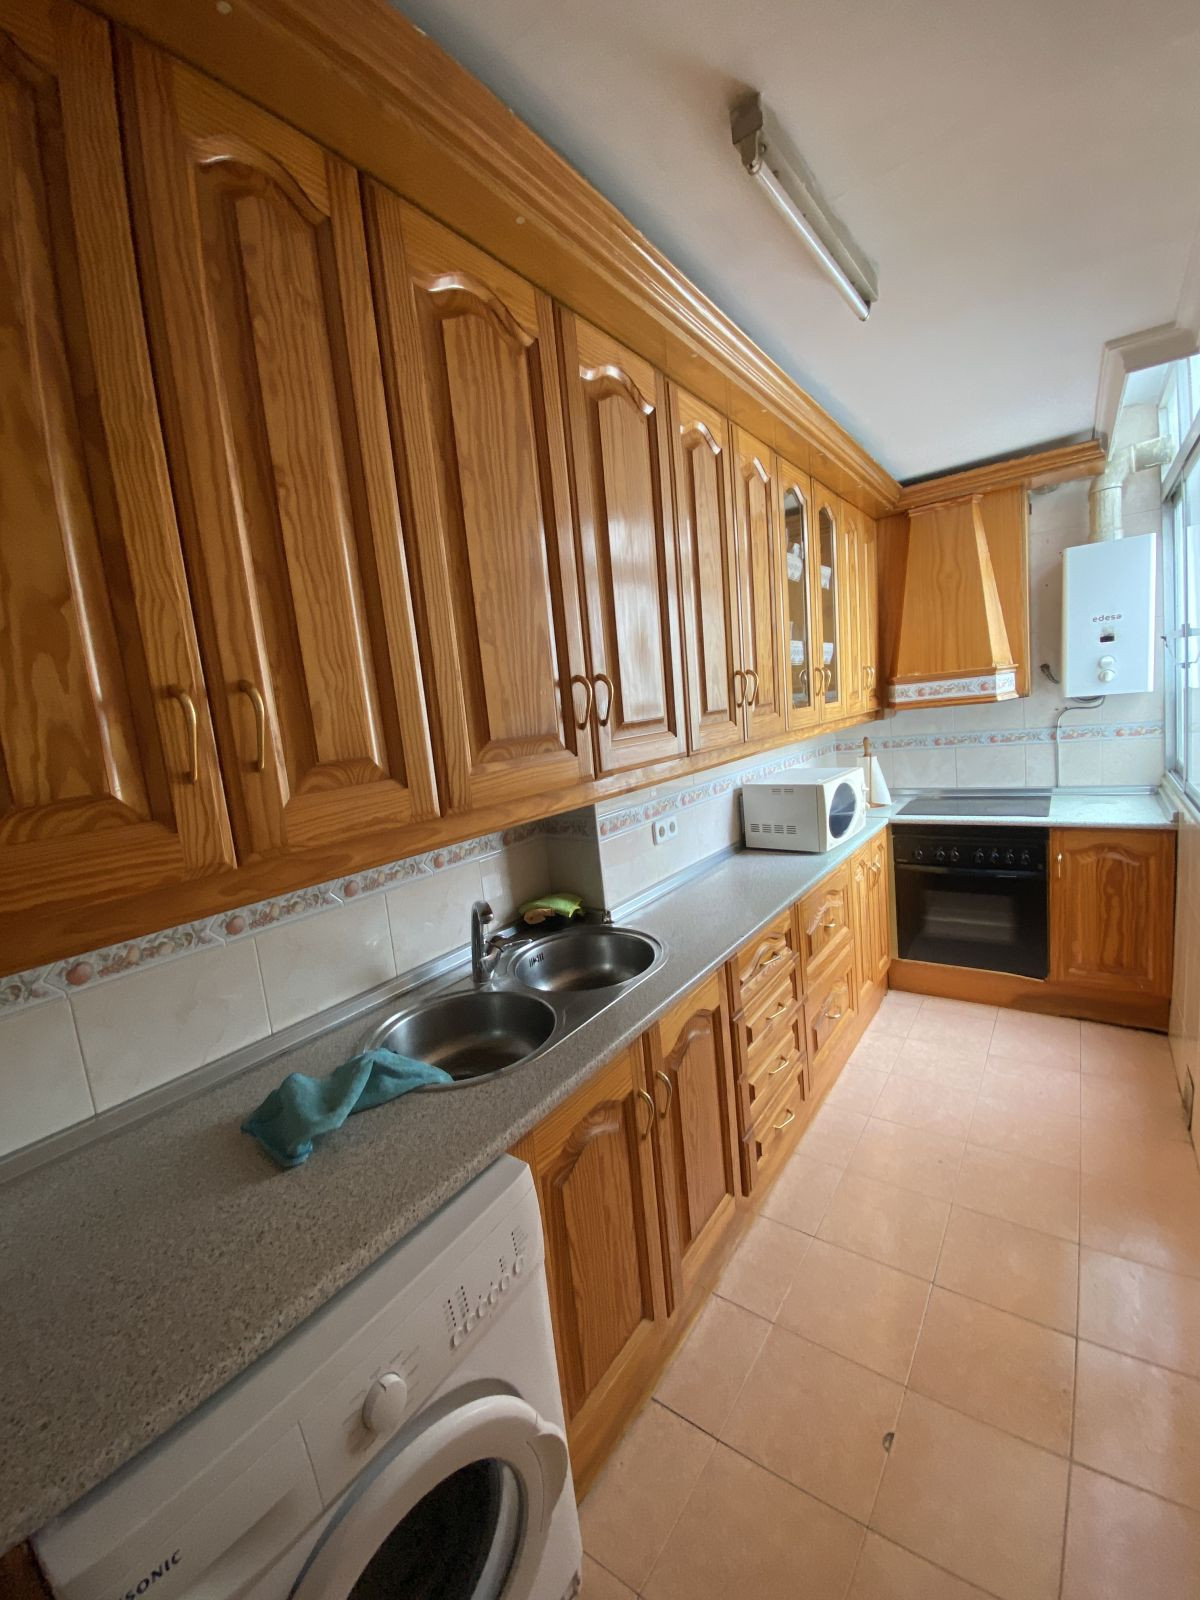 3  bedroom apartment, located in the center of Fuengirola. Large and independent kitchen. Bathroom w,Spain